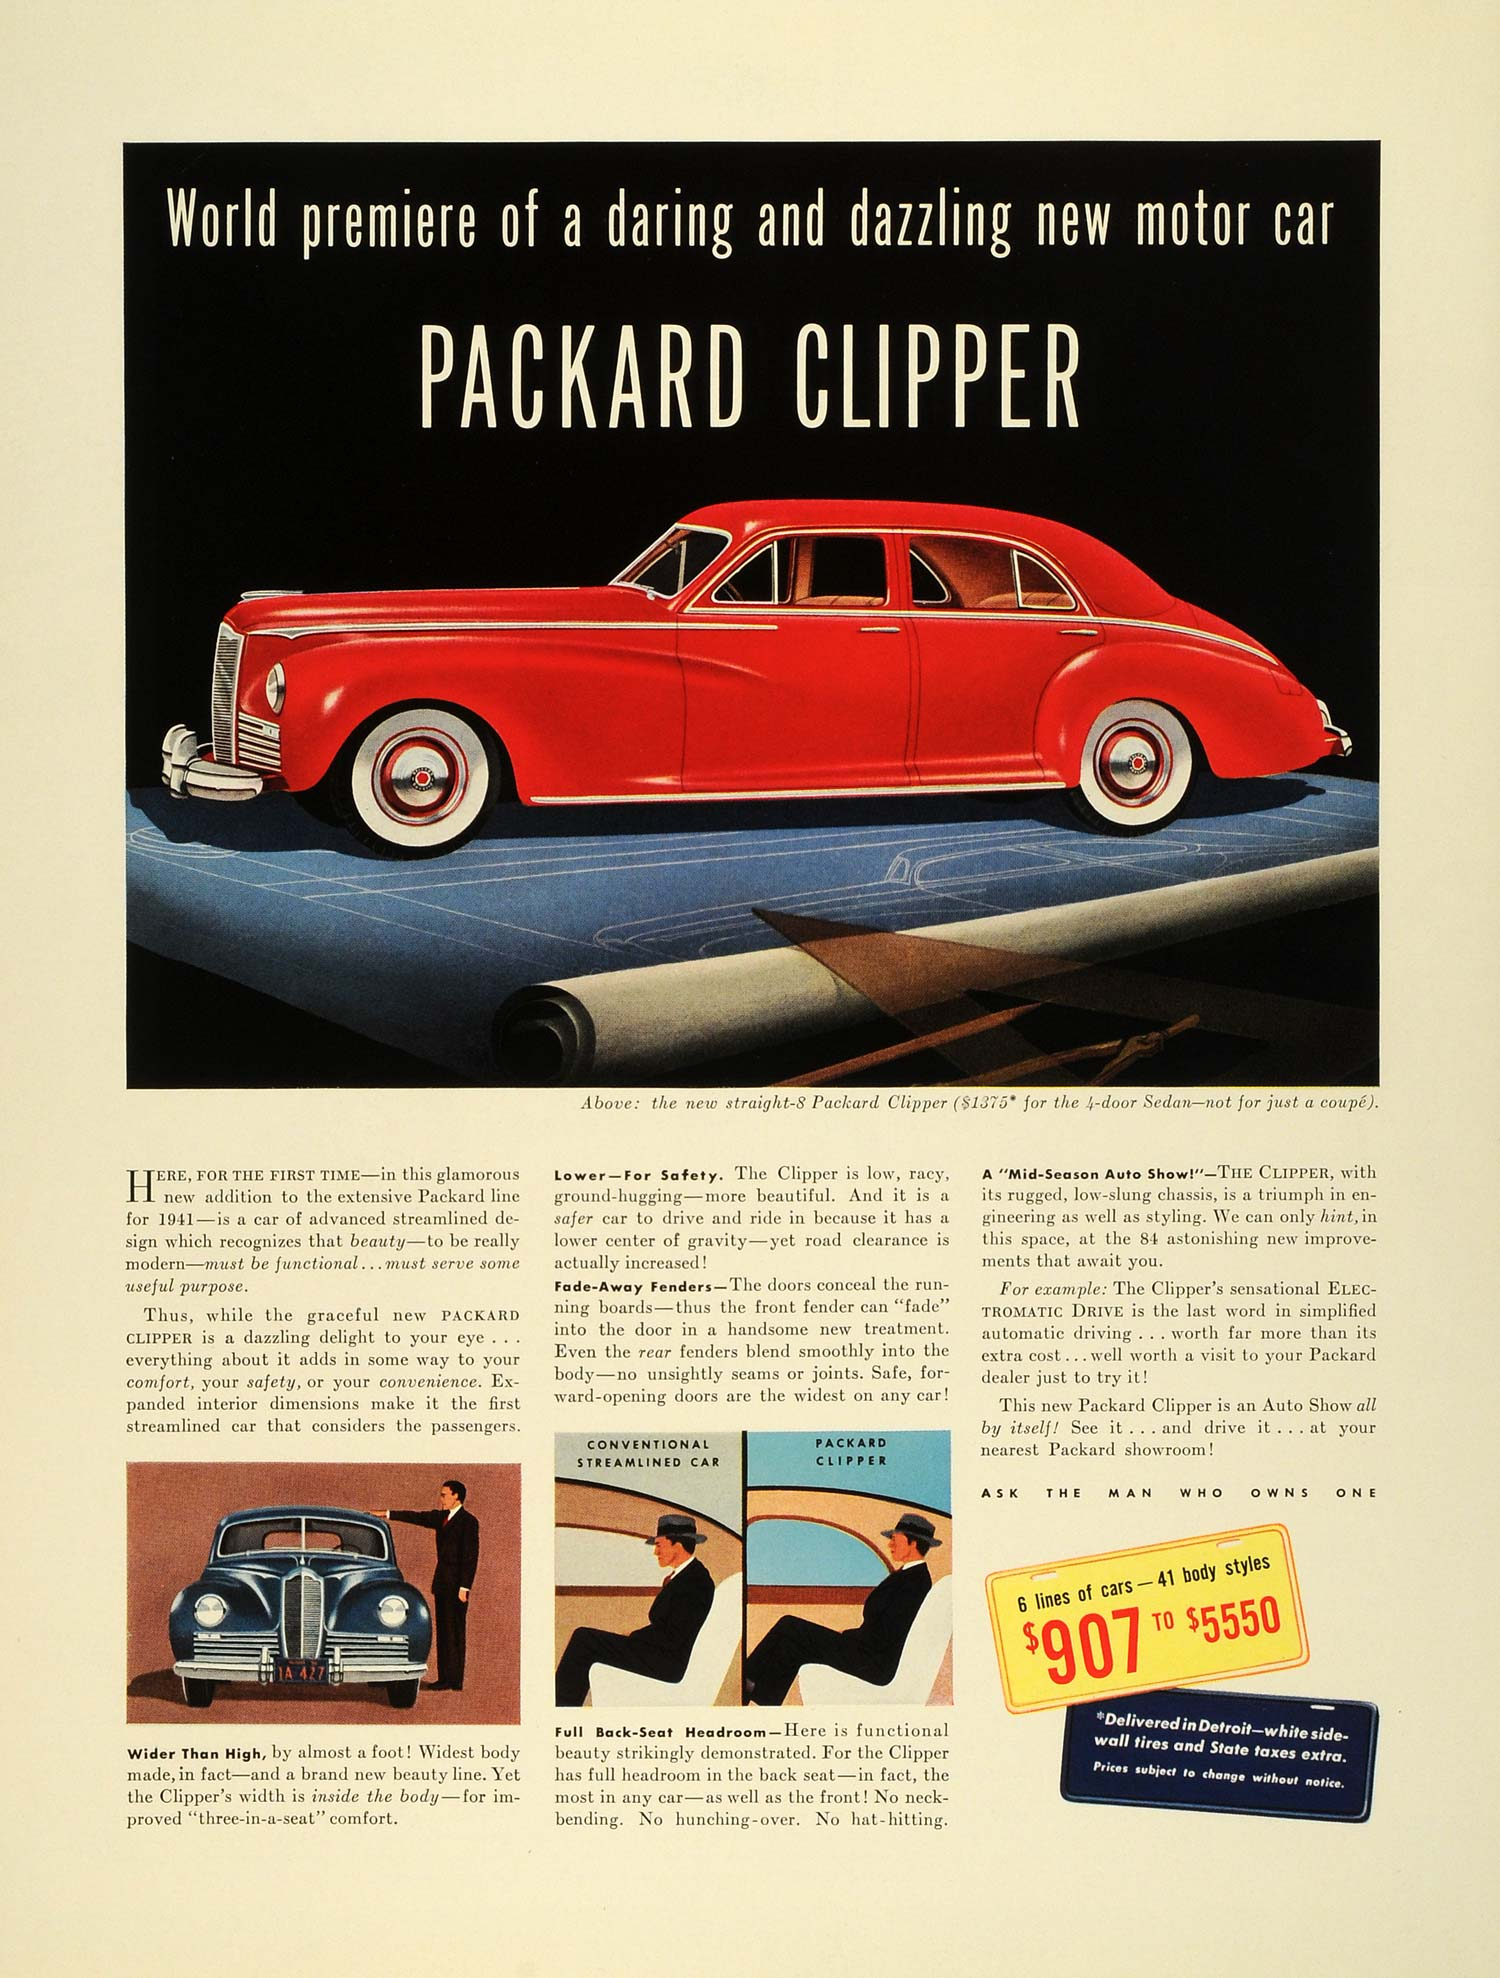 Vintage Advertising Art Tagged Cars Page 2 Period Paper Body Wiring Diagram For 1942 Chevrolet Two And Four Door Sedans 1941 Ad Straight Eight Packard Clipper Automobile Specifications Fz5